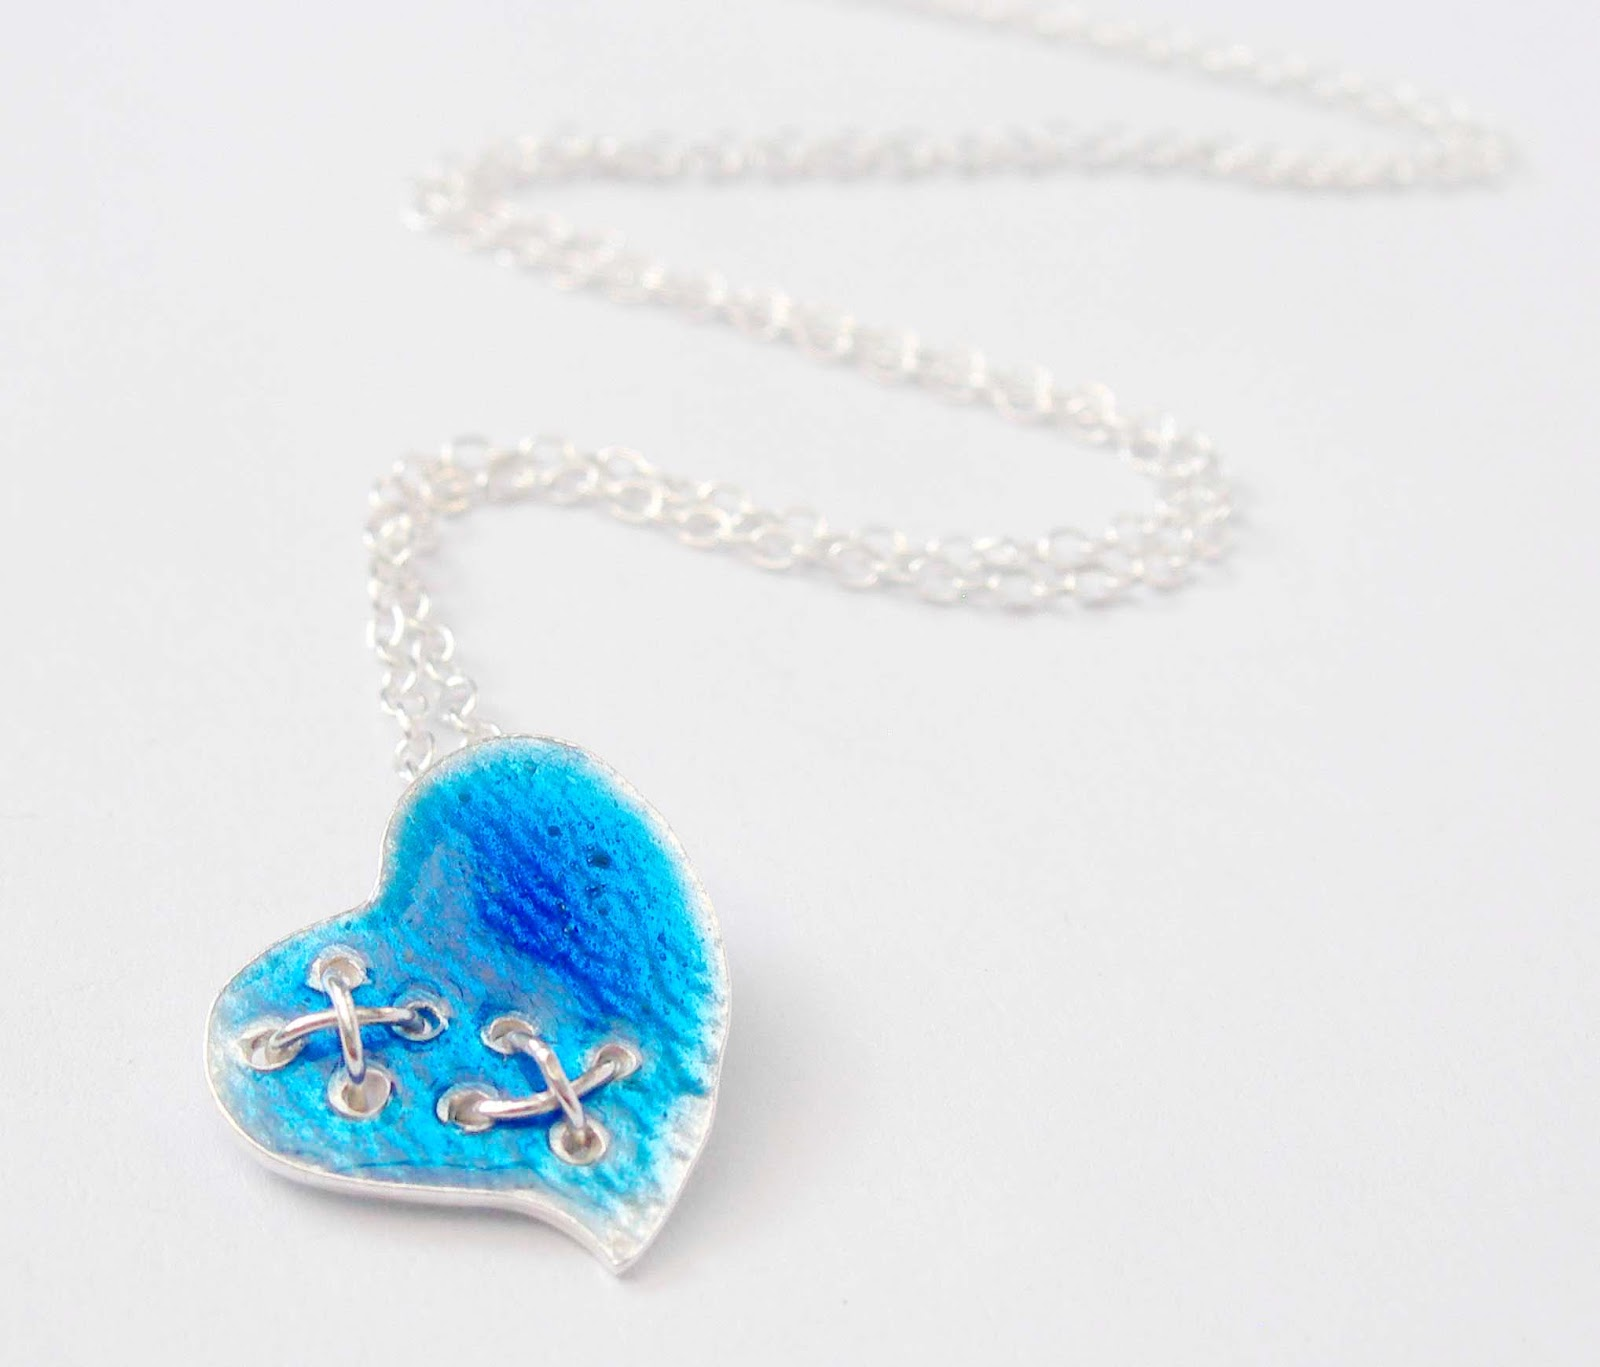 Enamelled Silver Kiss my Heart Pendant in Sapphire Blue